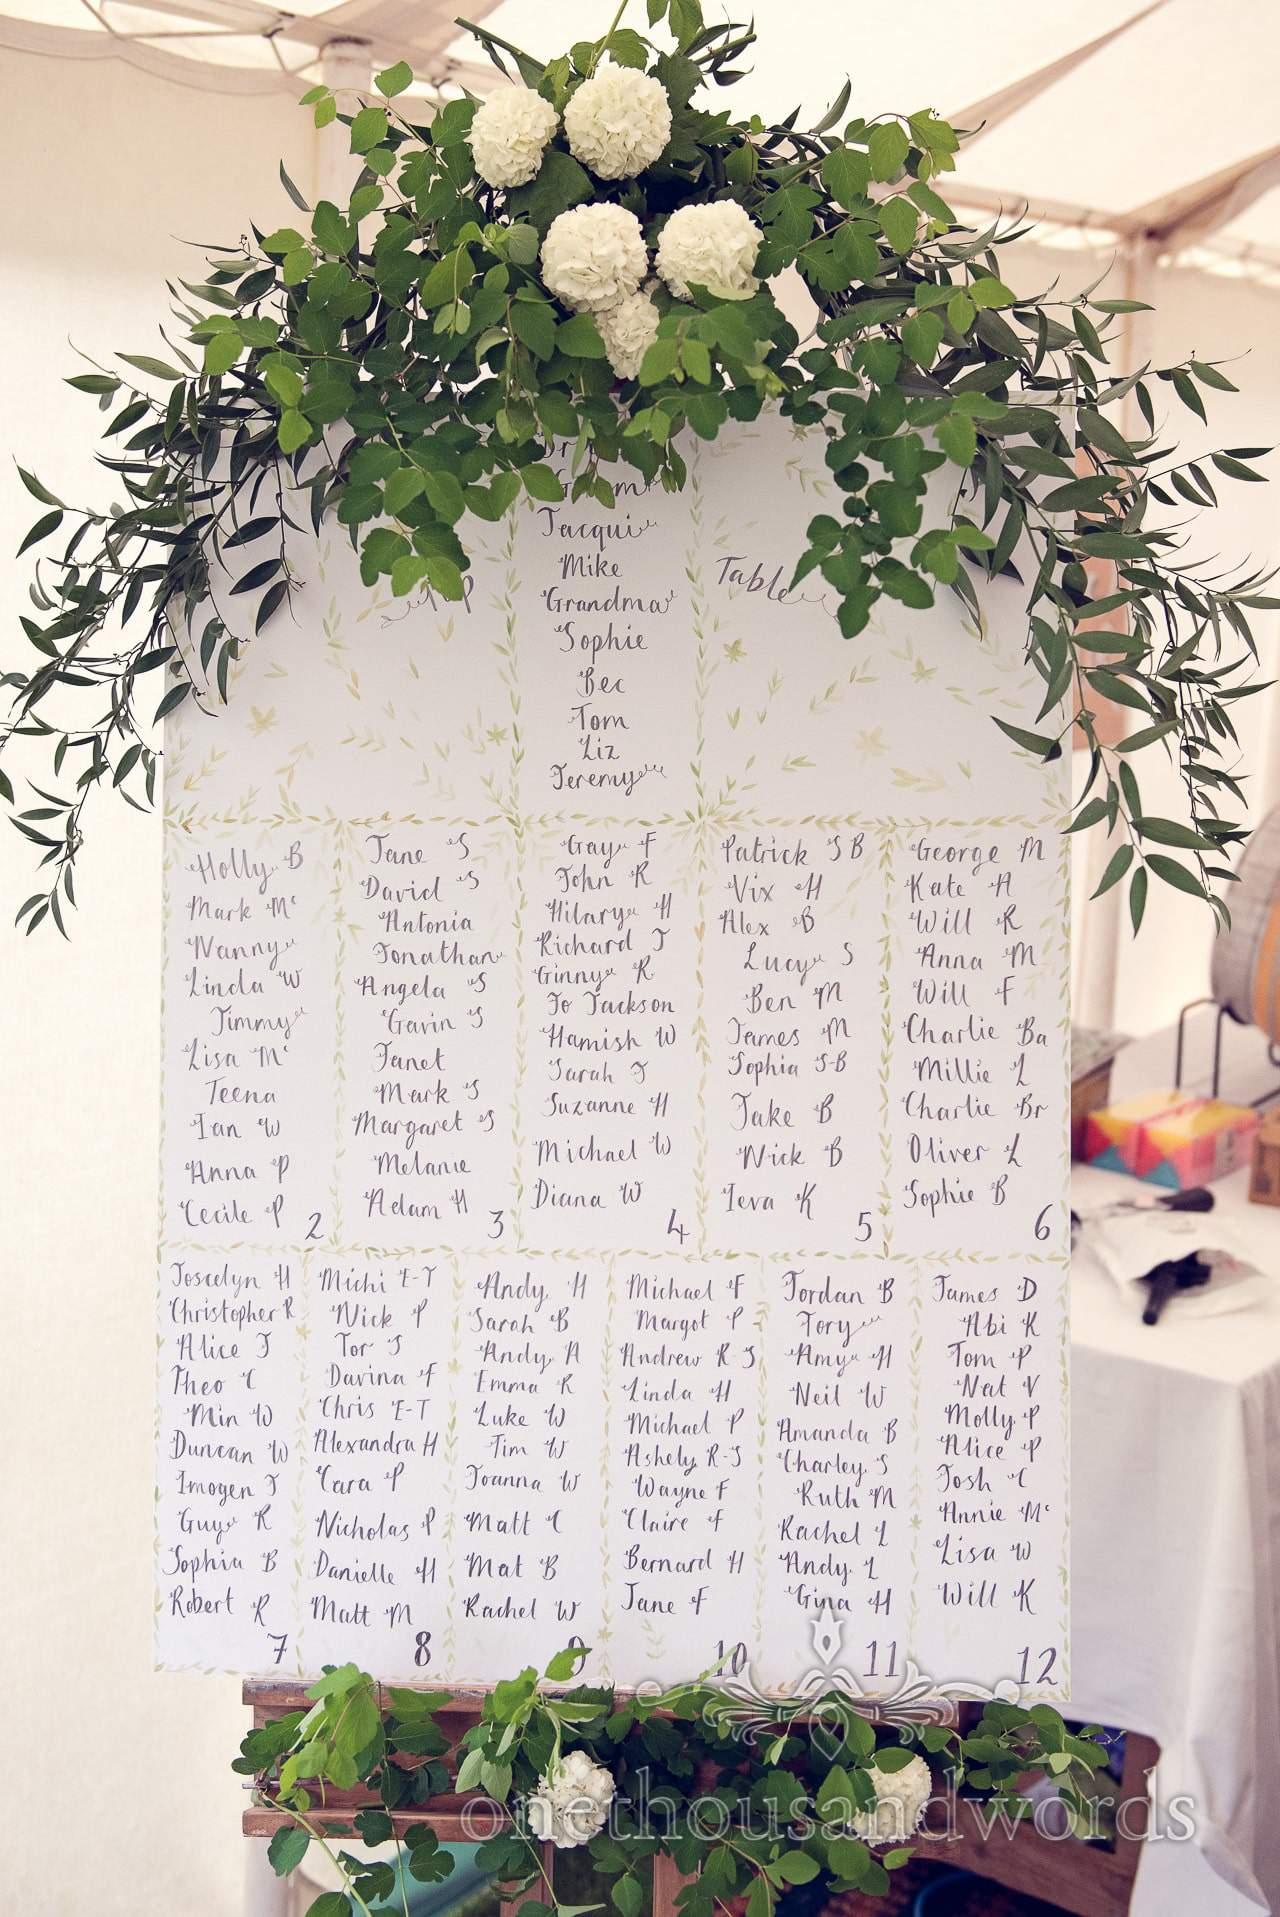 Wedding table plan with flowers at The Priory Wareham wedding